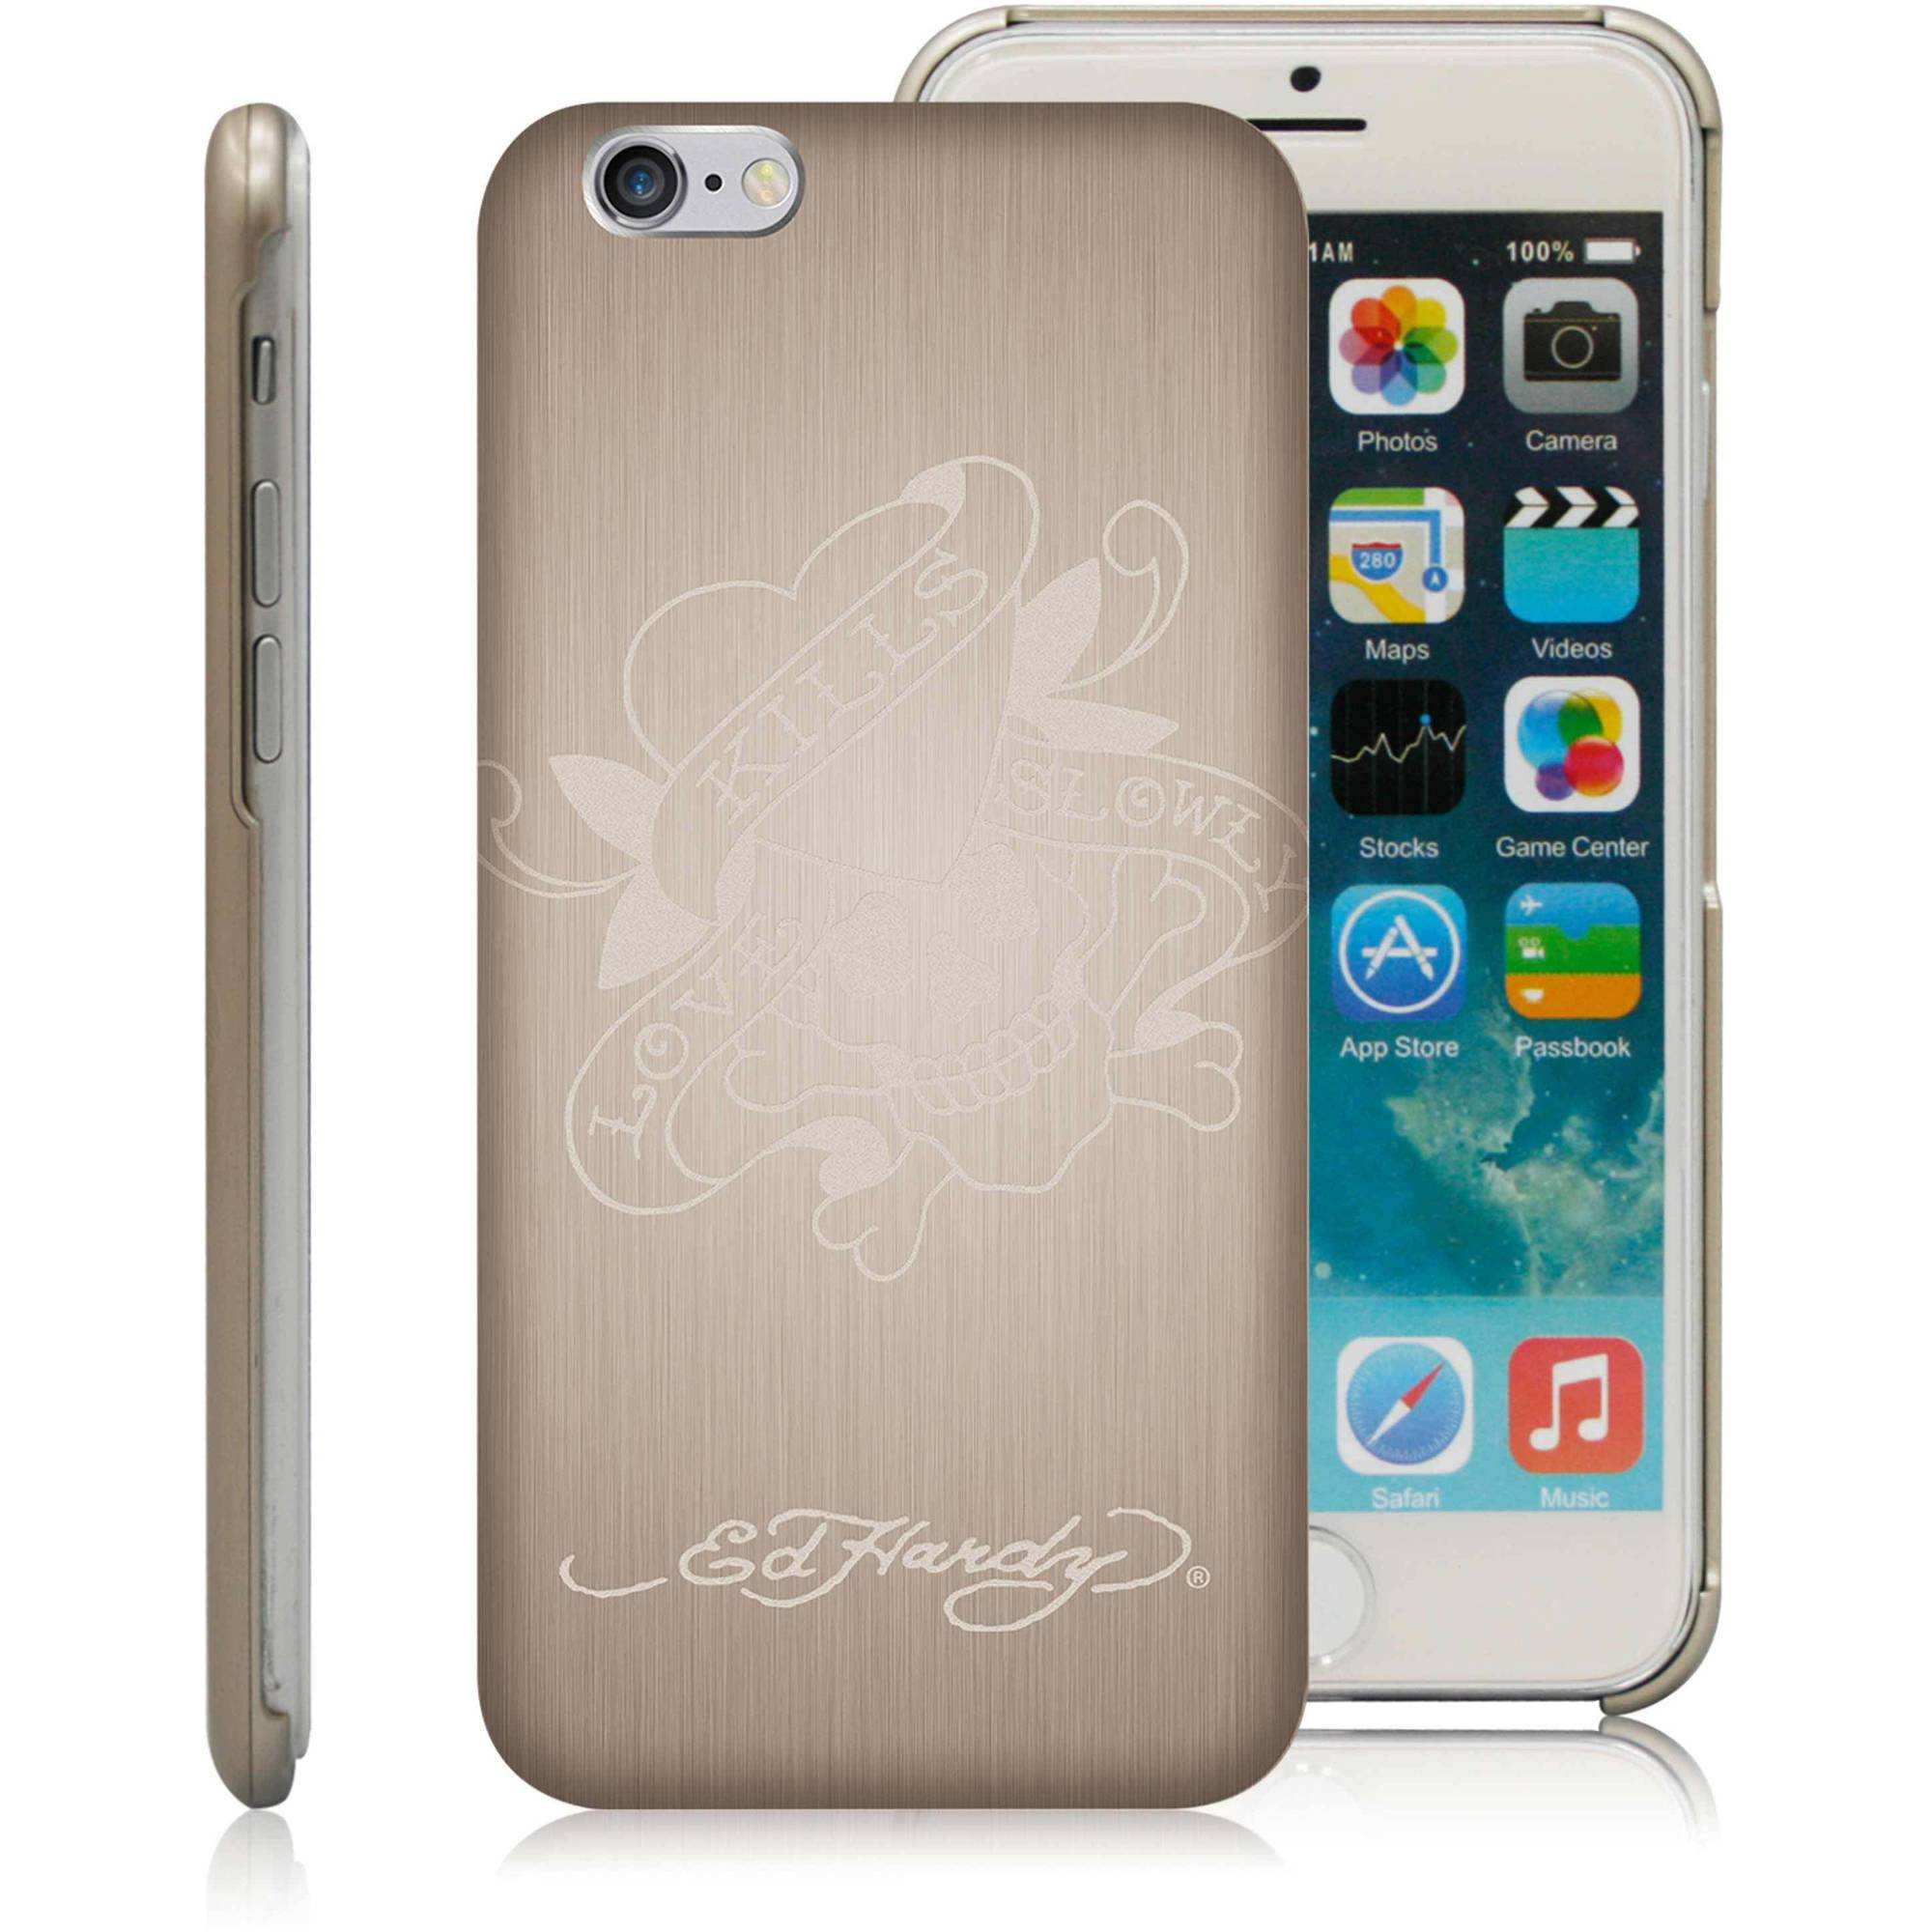 Choicee x Ed Hardy Apple iPhone 6 Case